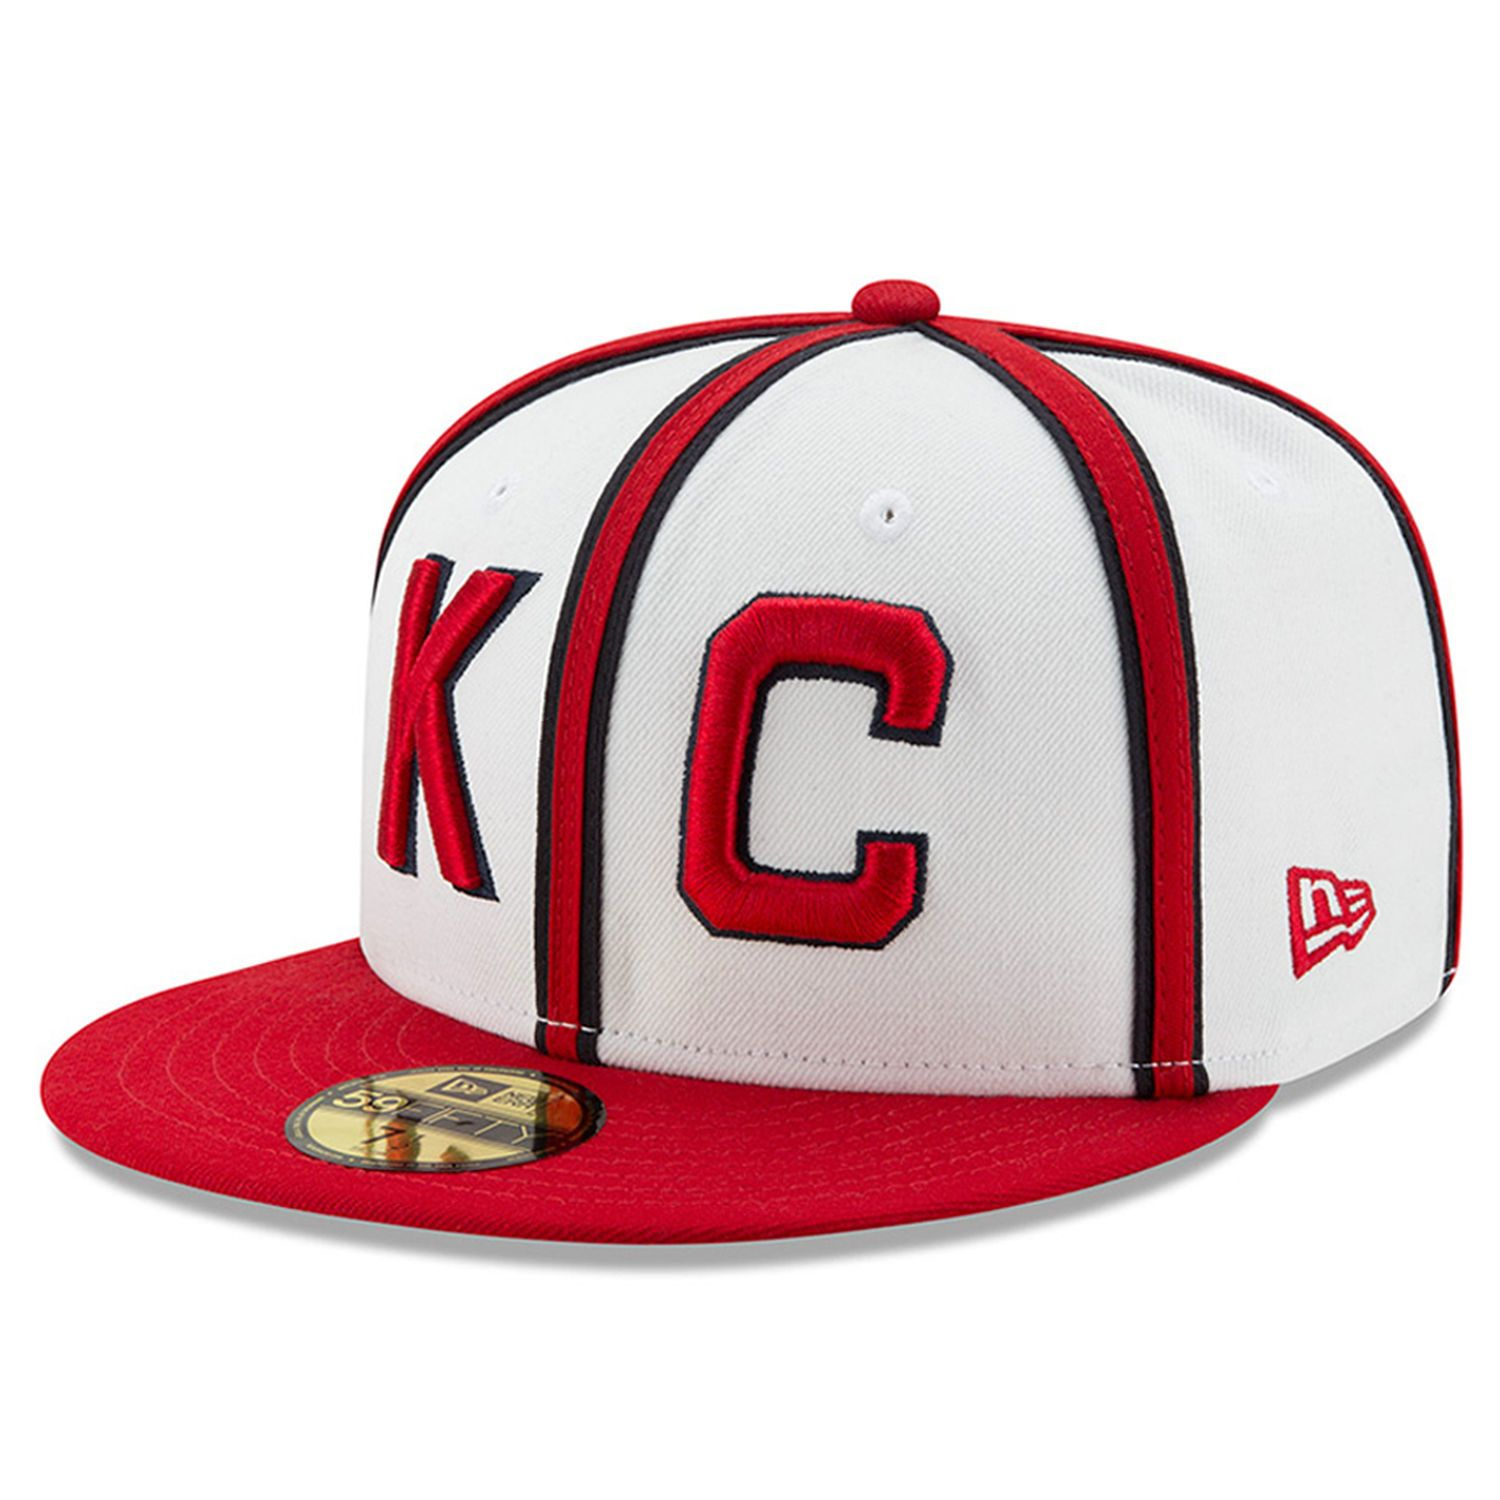 Men S Kansas City Monarchs New Era White Turn Back The Clock 59fifty Fitted Hat Fitted Hats Hats For Men Kansas